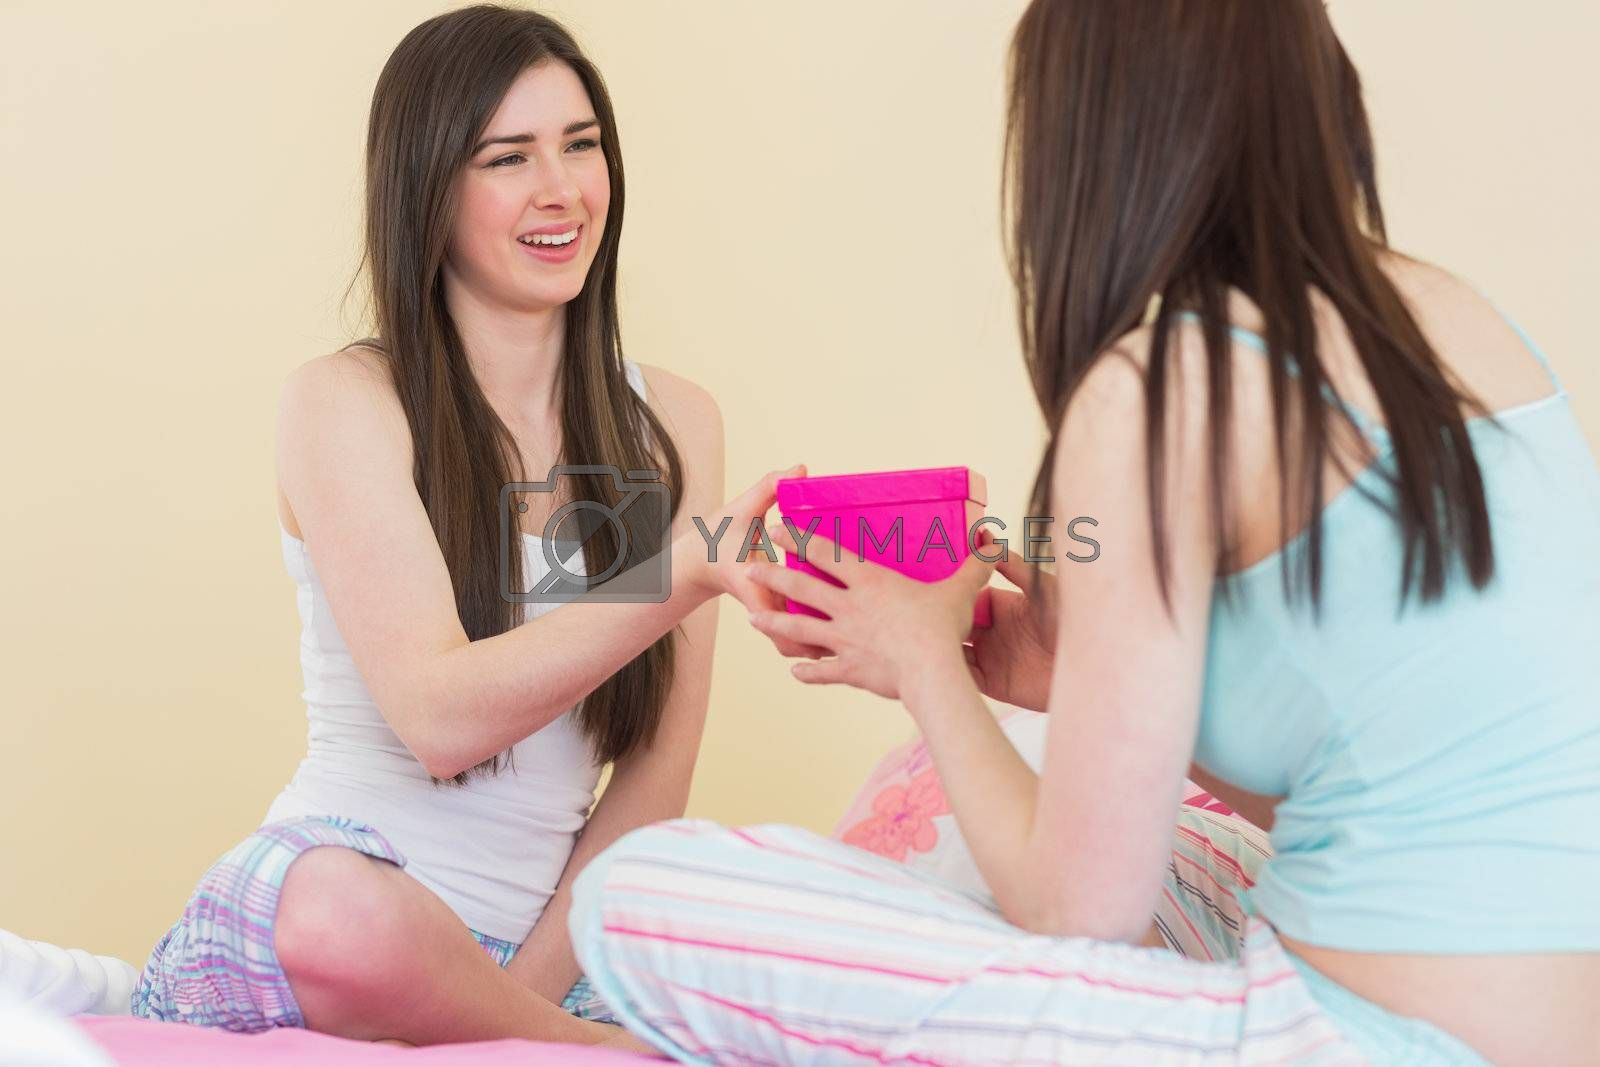 Smiling girl in pajamas giving a present to her friend by Wavebreakmedia